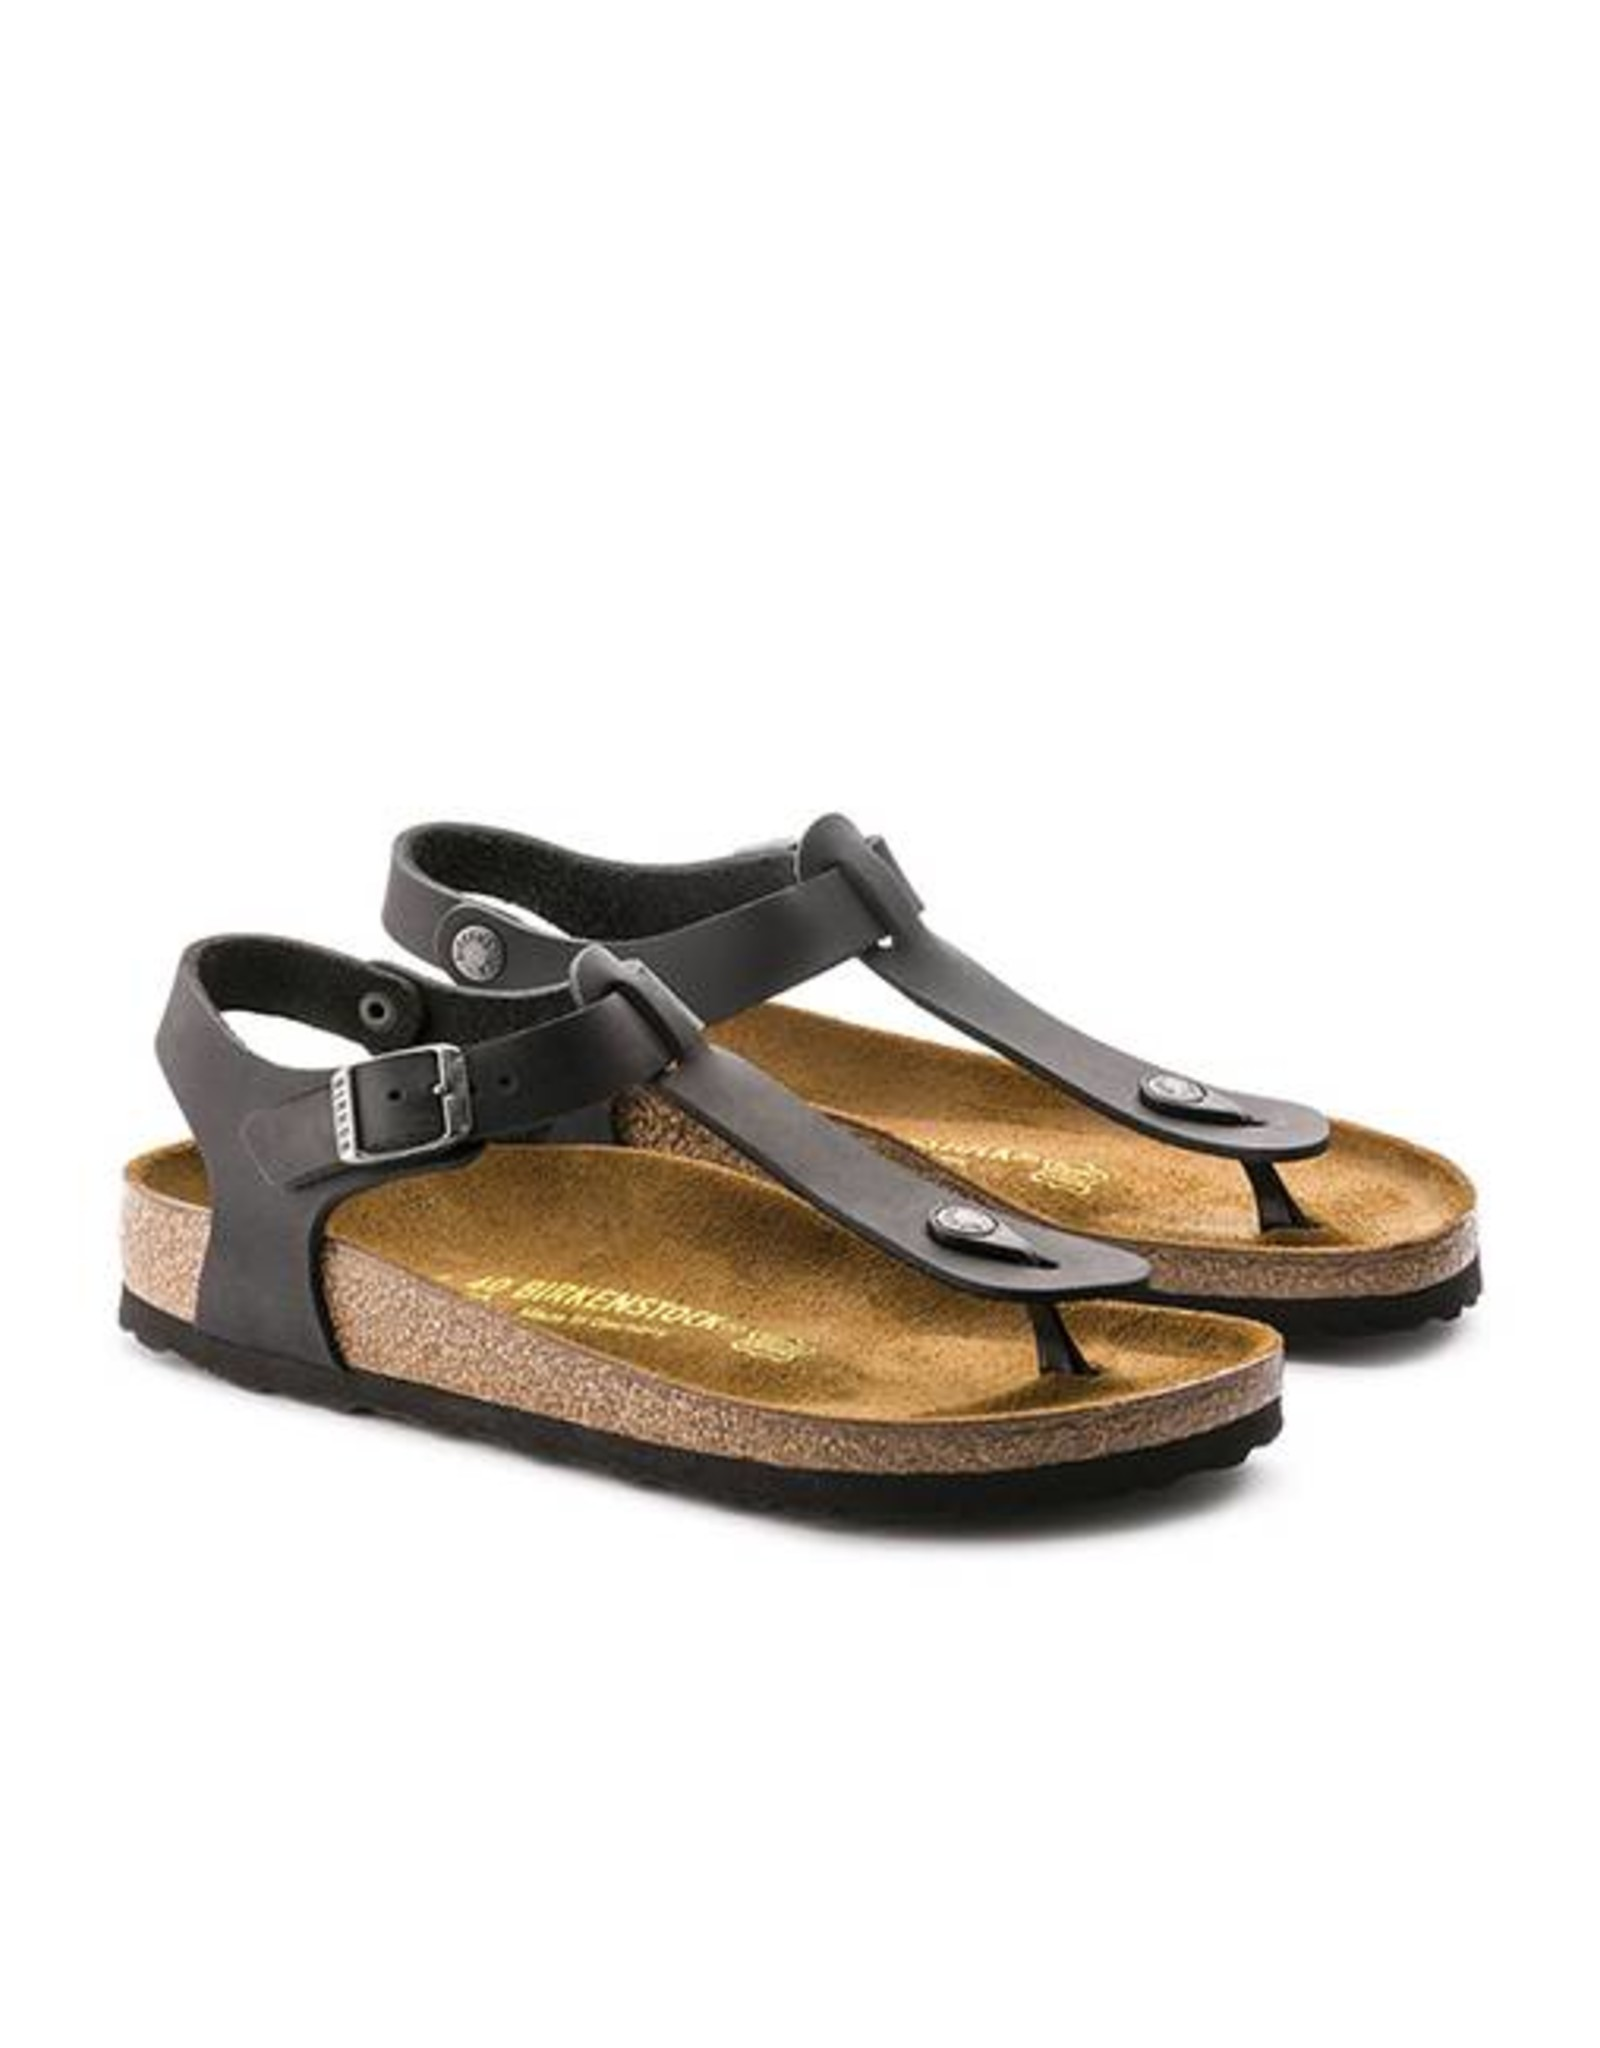 Birkenstock Kairo - Natural Leather in Black